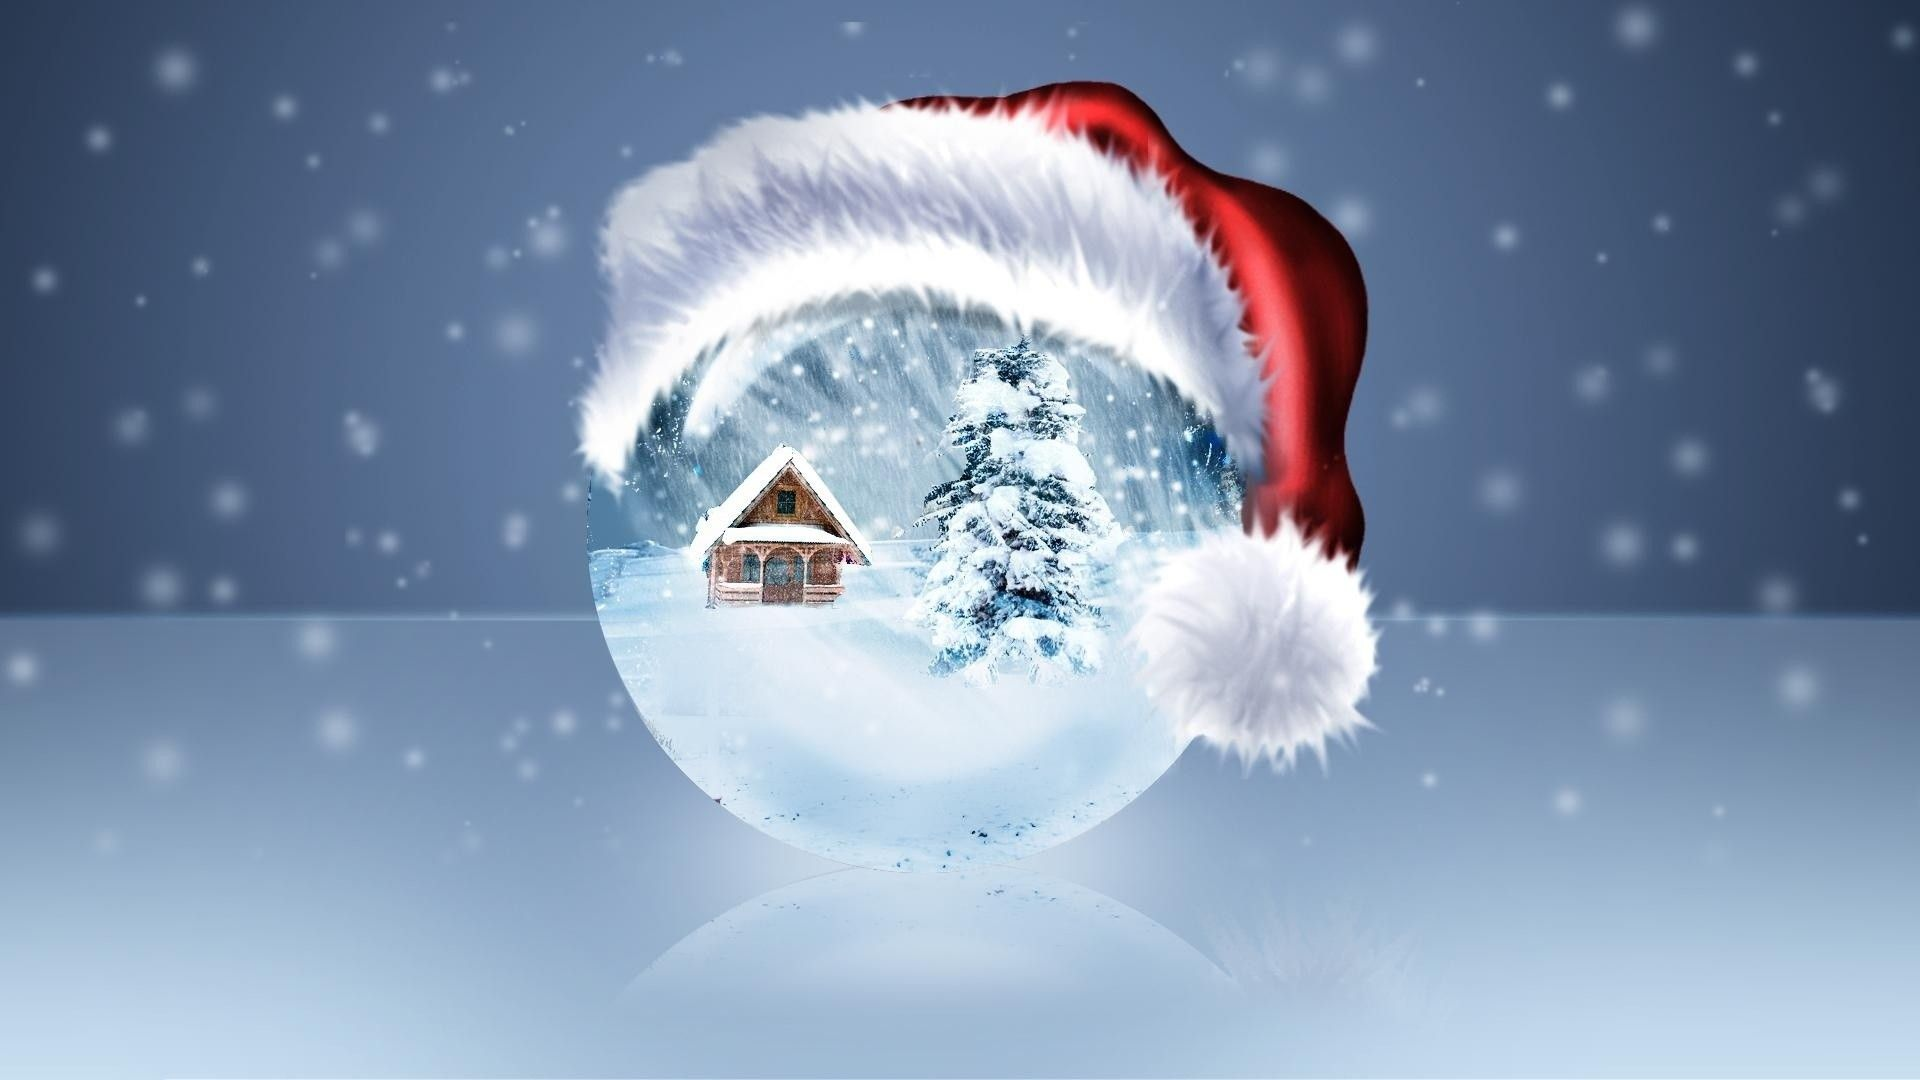 Snow Globe Wallpapers Top Free Snow Globe Backgrounds Wallpaperaccess